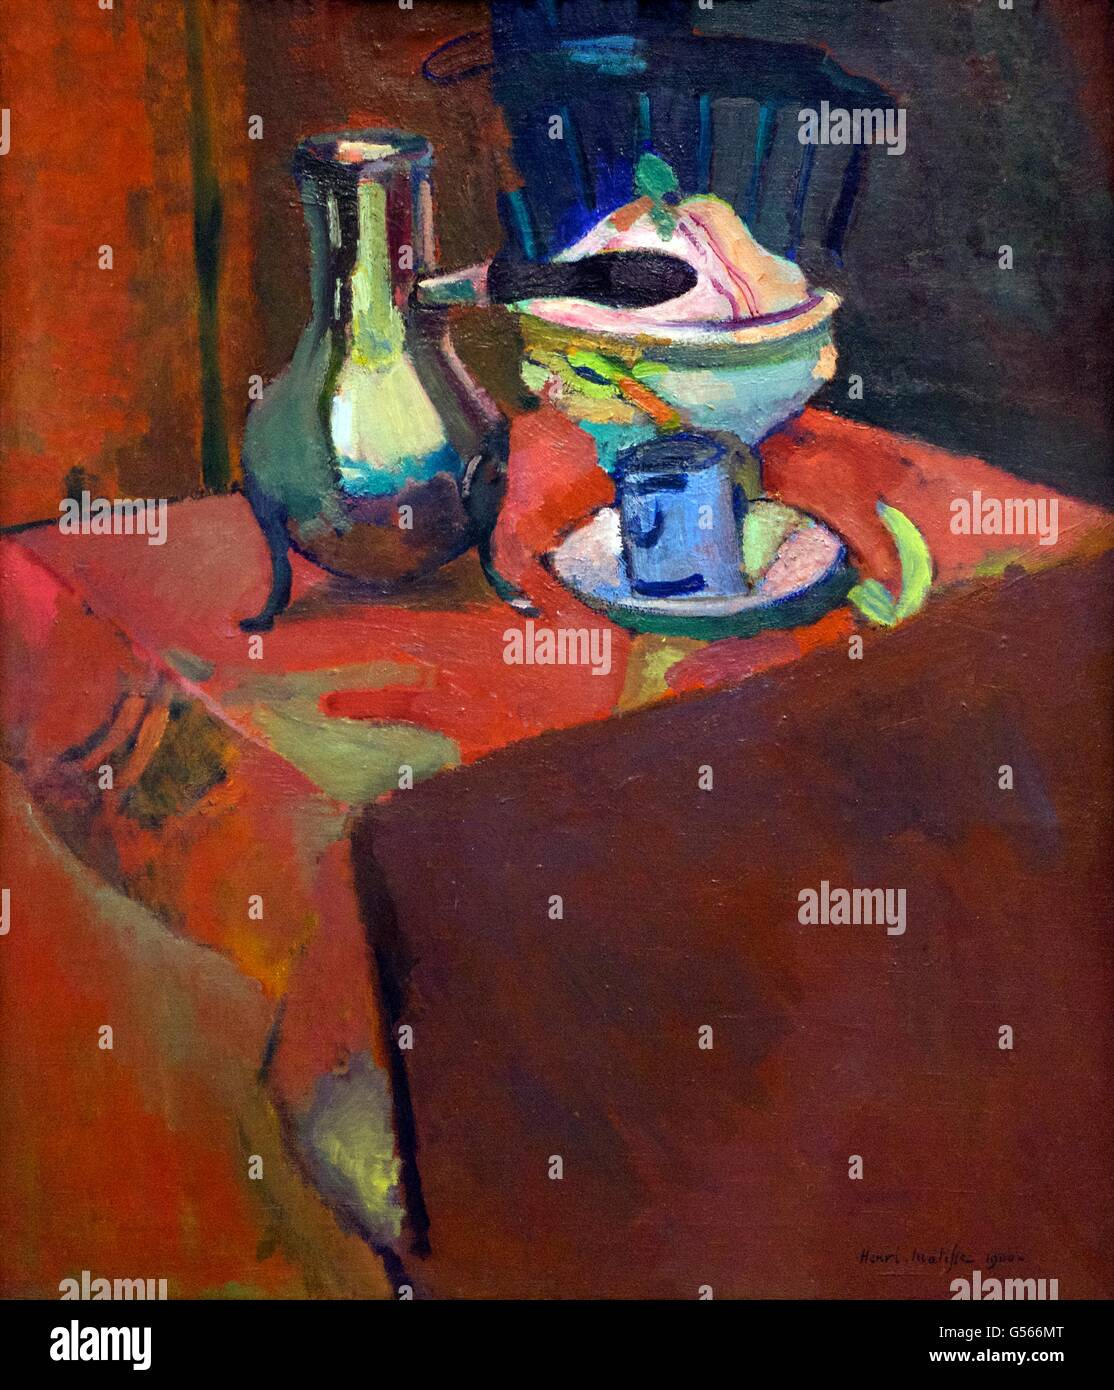 Crockery on a Table, by Henri Matisse, 1900, State Hermitage Museum, Saint Petersburg, Russia - Stock Image